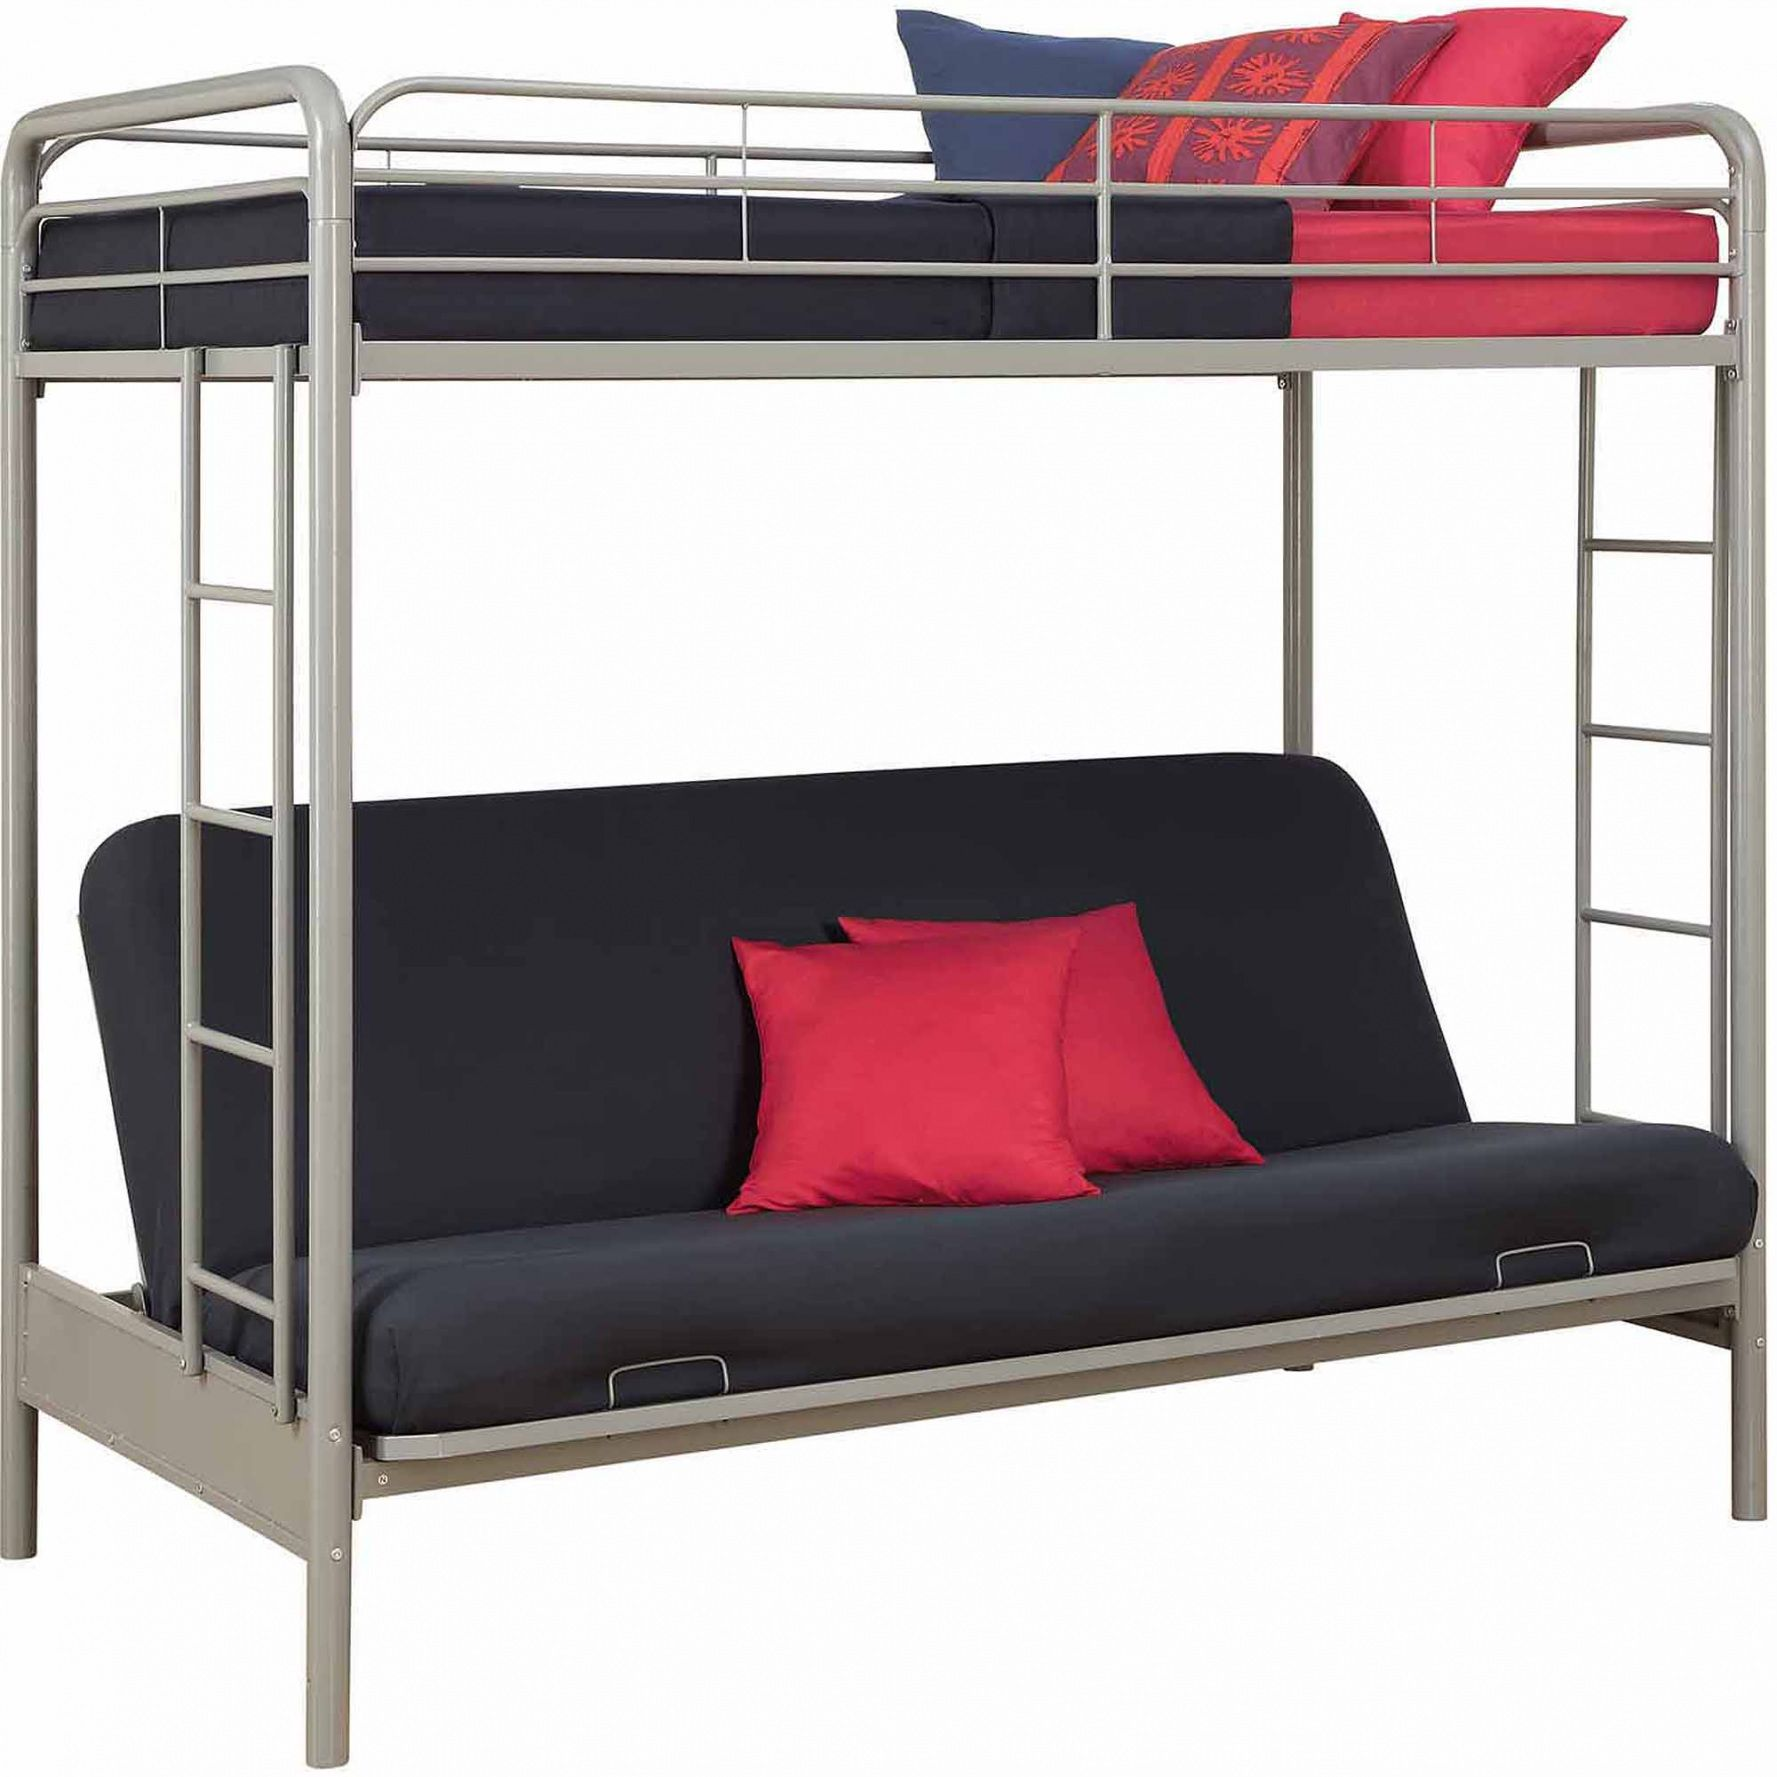 20 Futon Bunk Bed Frame Only